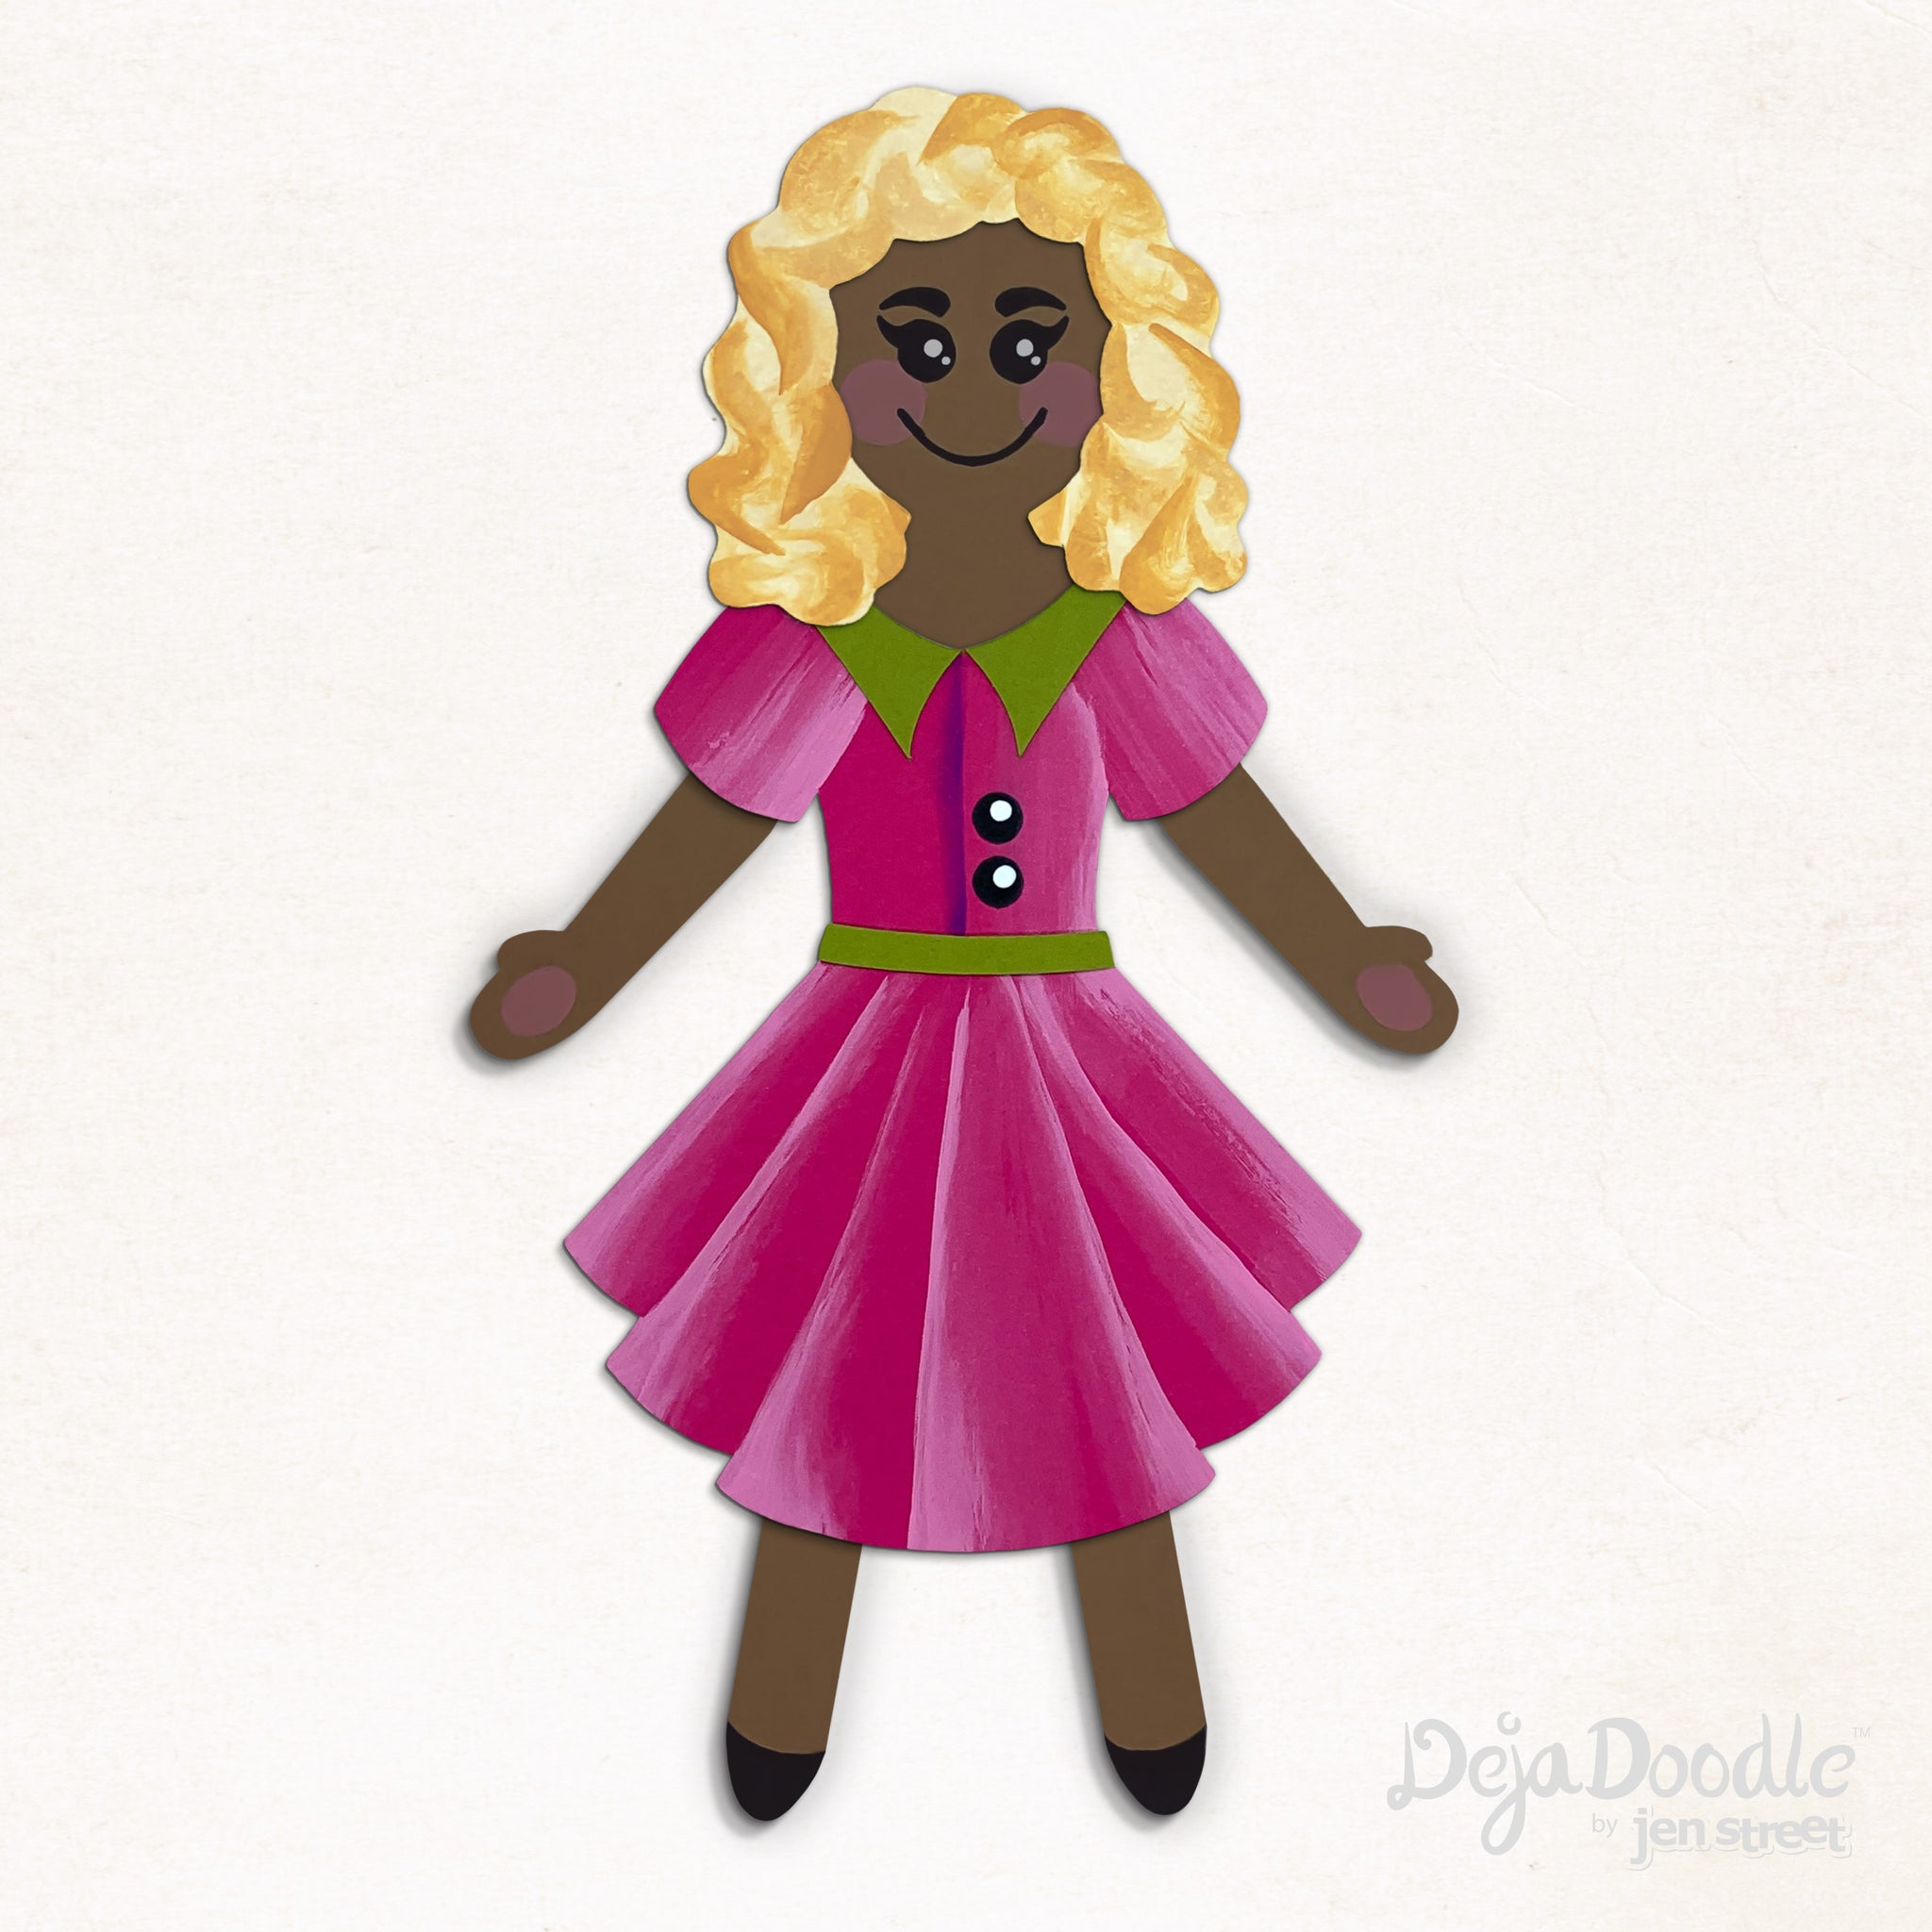 Silhouette Style A - Medium Skin Tone - Tangled Up in Blonde Hair (Choose Hairstyle & Outfit)